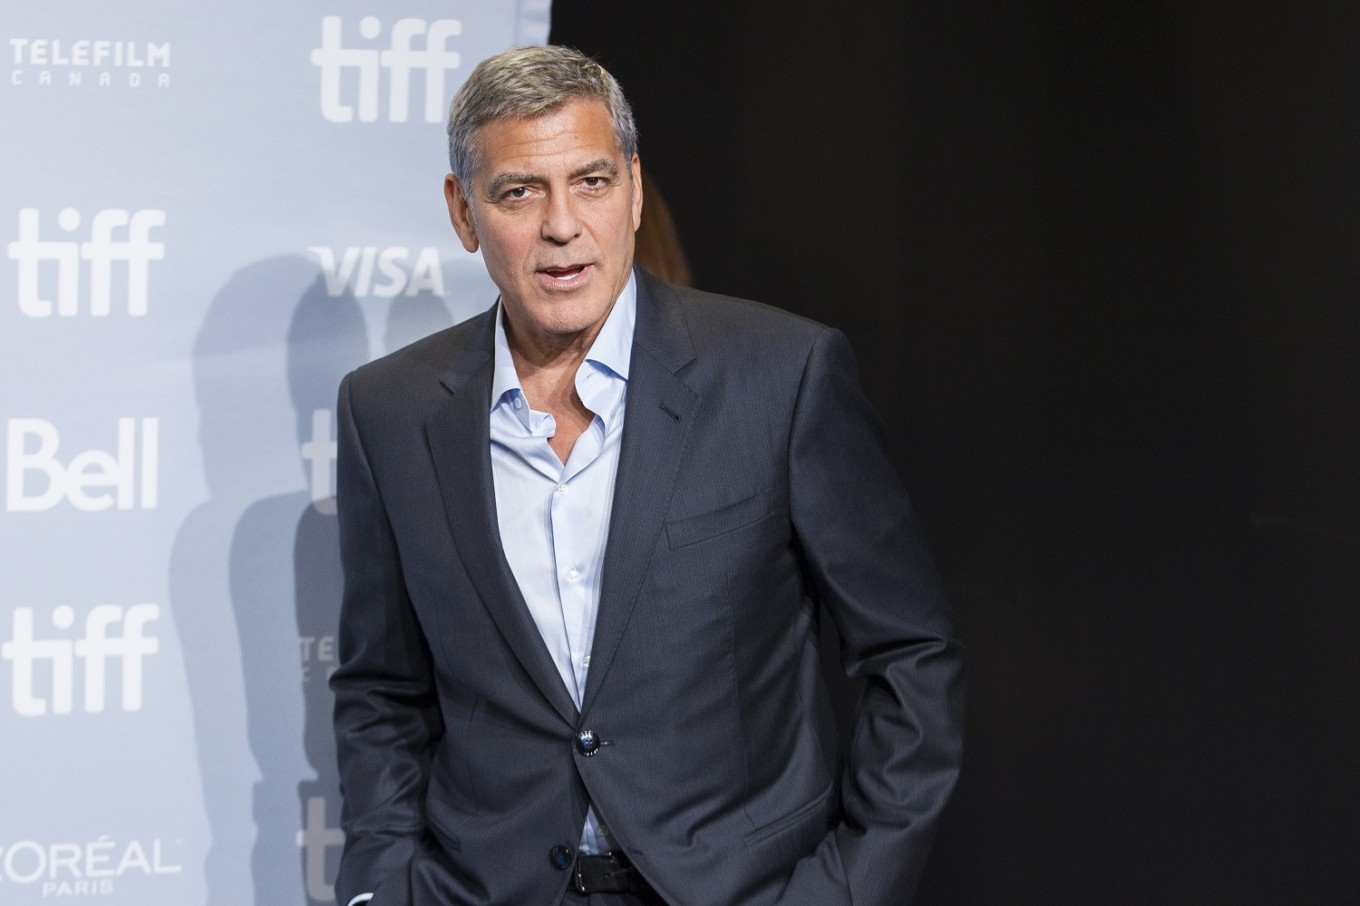 George Clooney to direct and star in Netflix's 'Good Morning, Midnight' adaptation